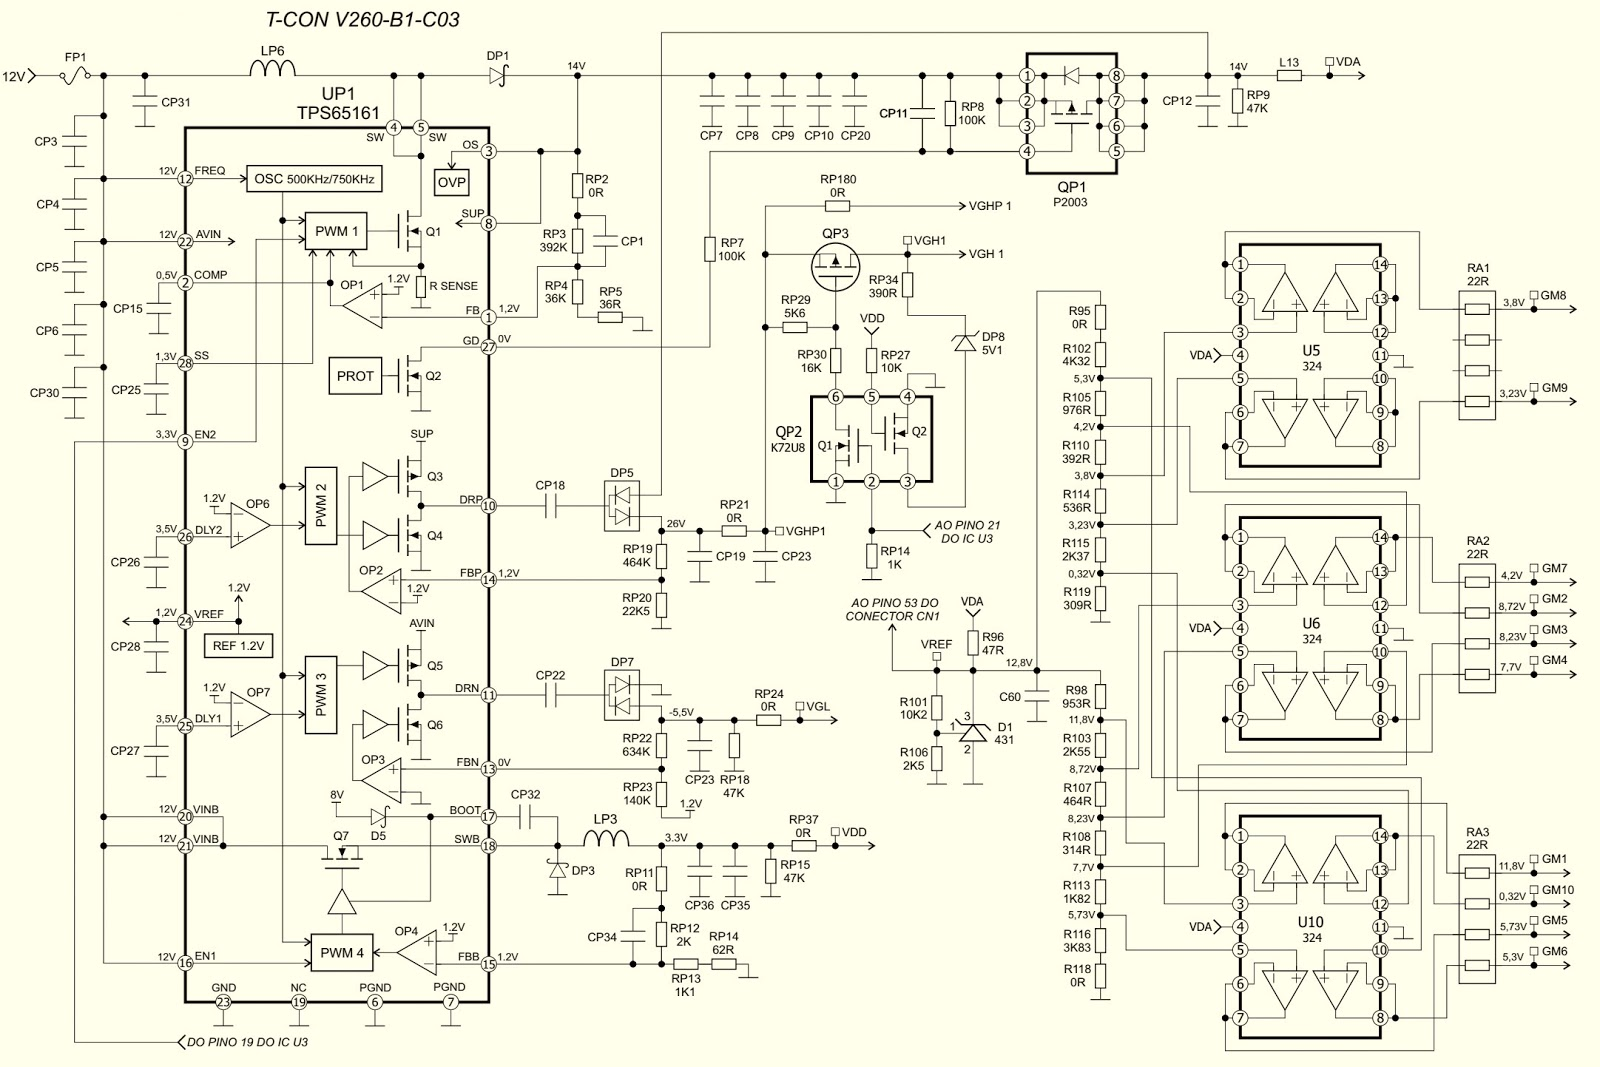 medium resolution of lg 26lc55 lcd tv t con board v260 b1 c03 circuit diagram led tv schematic tcon board schematic or